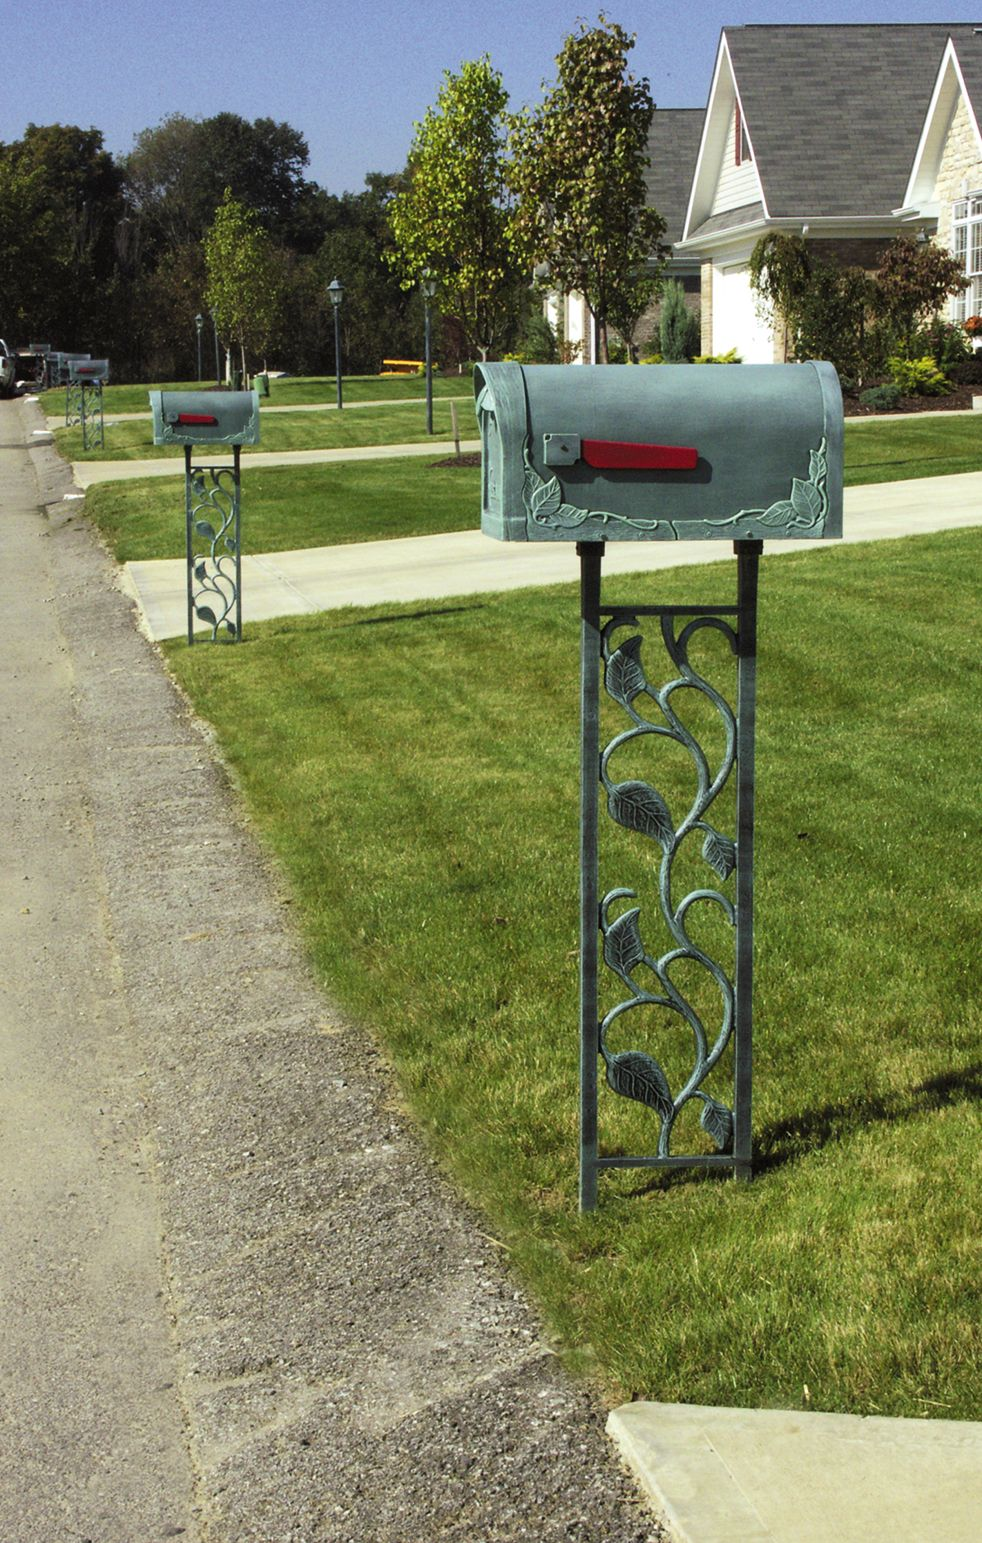 The floral cast aluminum mailbox post will add beauty to your home's curb appeal. #mailbox #mailboxes #beautification #decorative #landscape #homeowners #mailboxmonday #curbappeal #forsite #floral